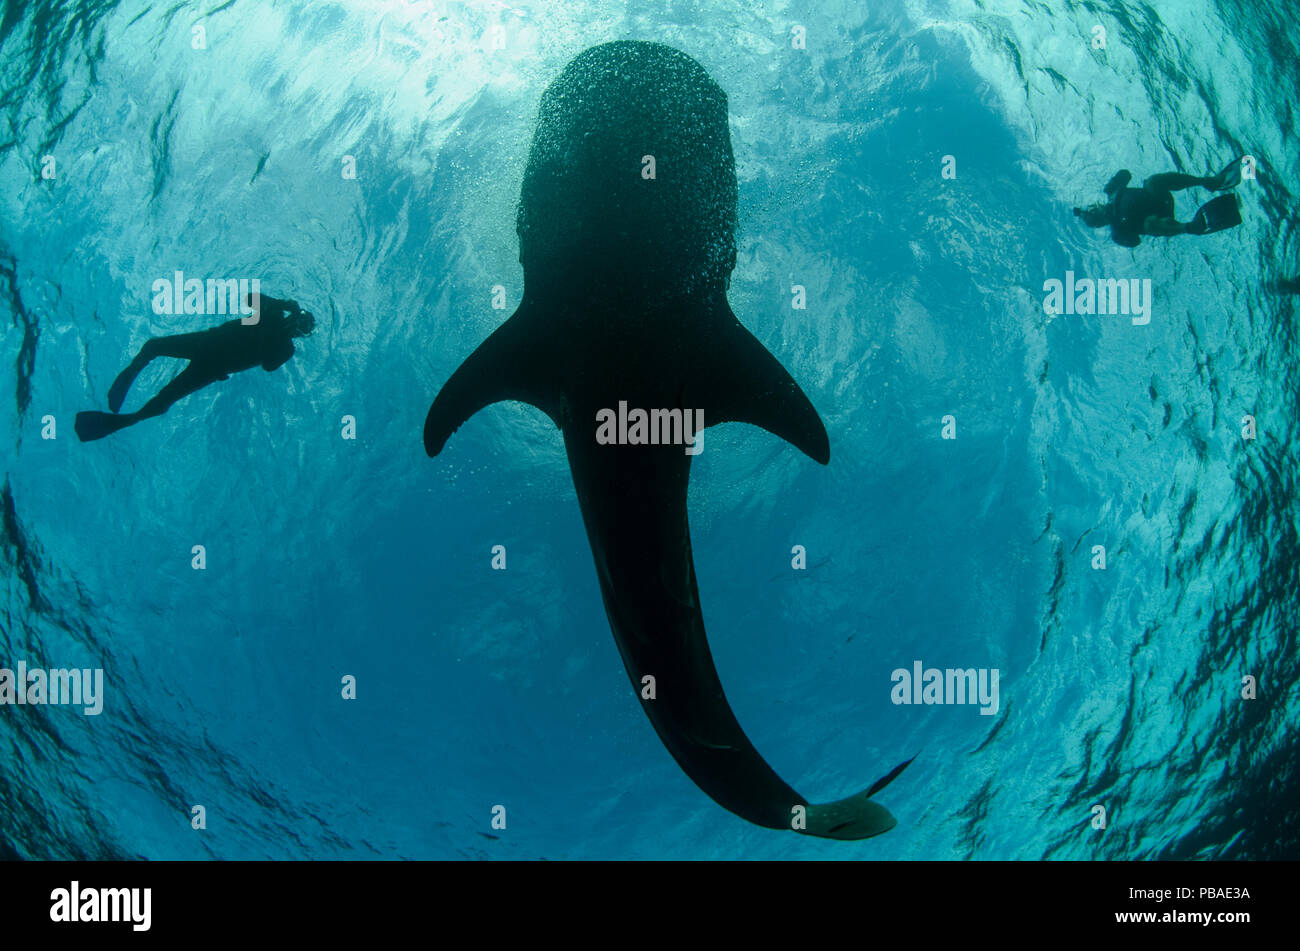 Whale shark (Rhincodon typus) and scuba divers seen from below, Cenderawasih Bay, West Papua. Indonesia. - Stock Image